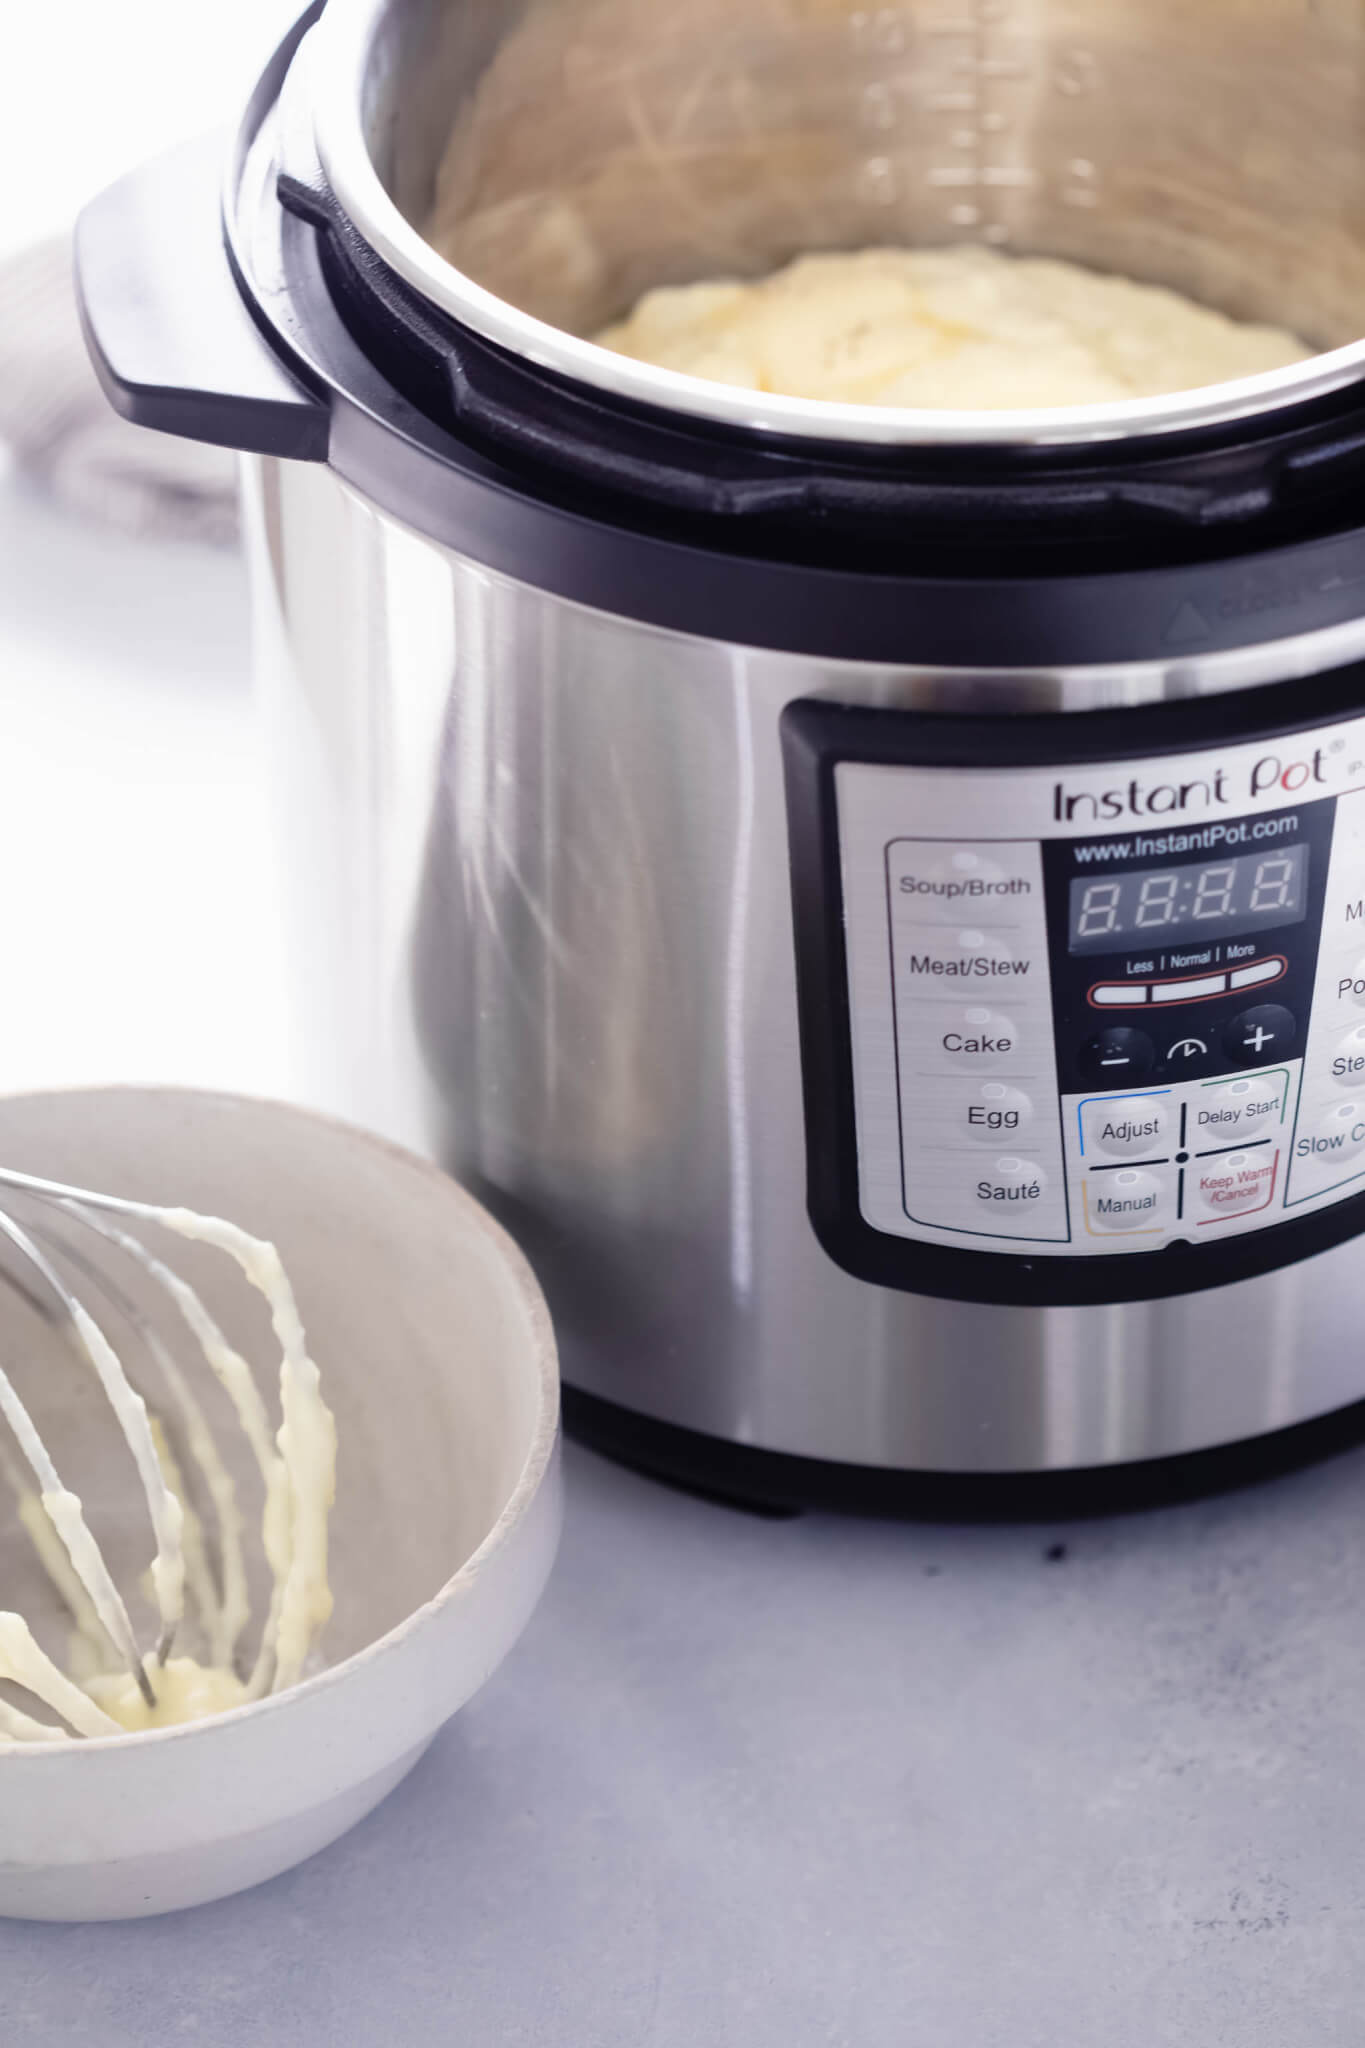 Side view of instant pot filled with mashed potatoes.